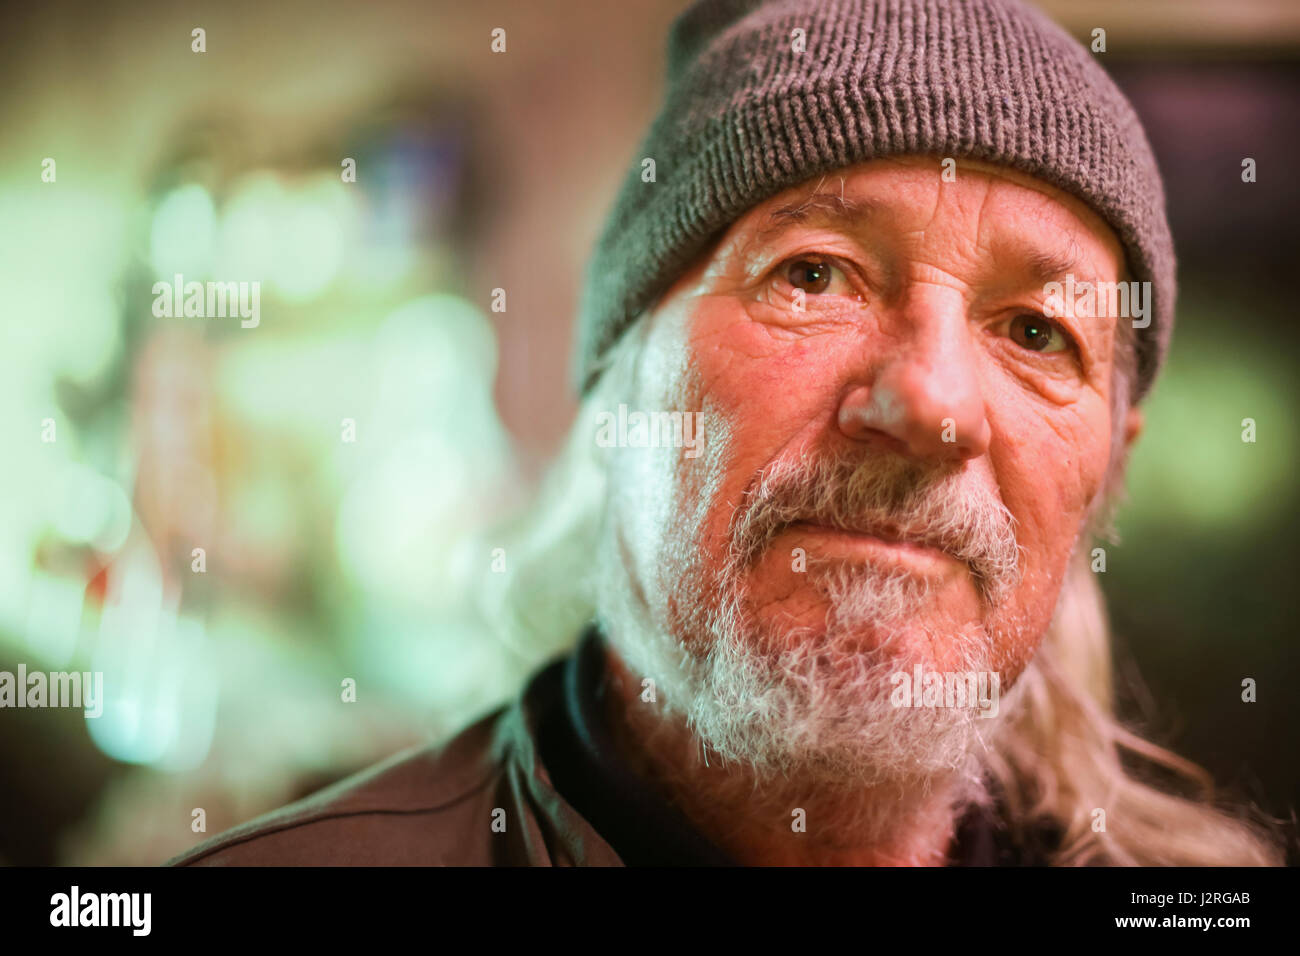 A portrait of a senior adult man looking at the camera. - Stock Image